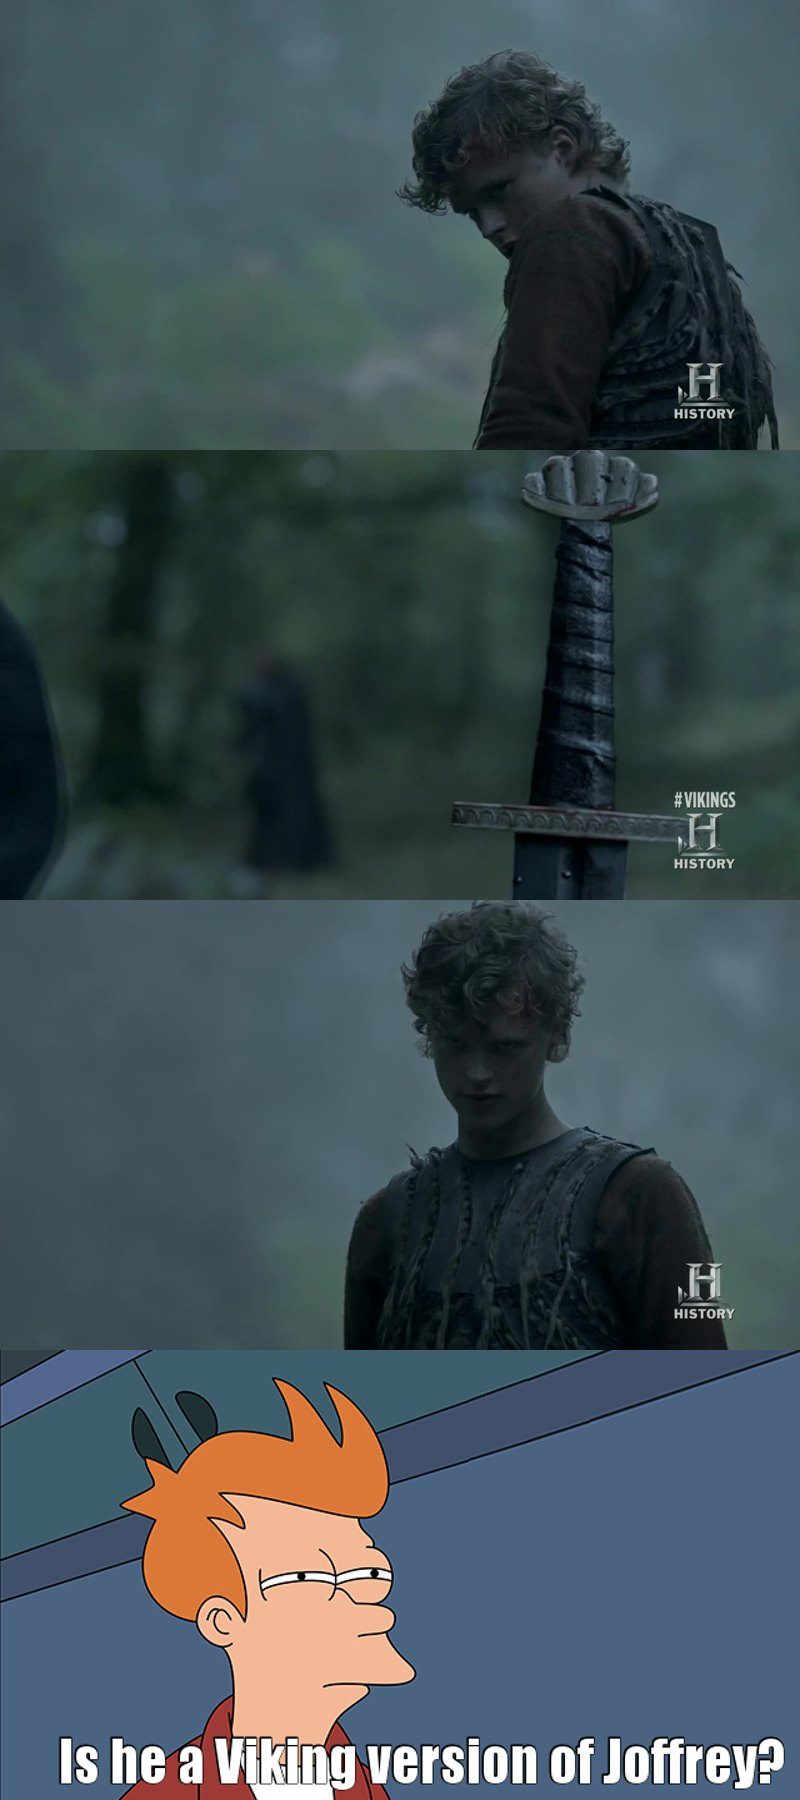 A spoiled brat son of the King and with a psycho's face. Is he the Joffrey from Vikings?